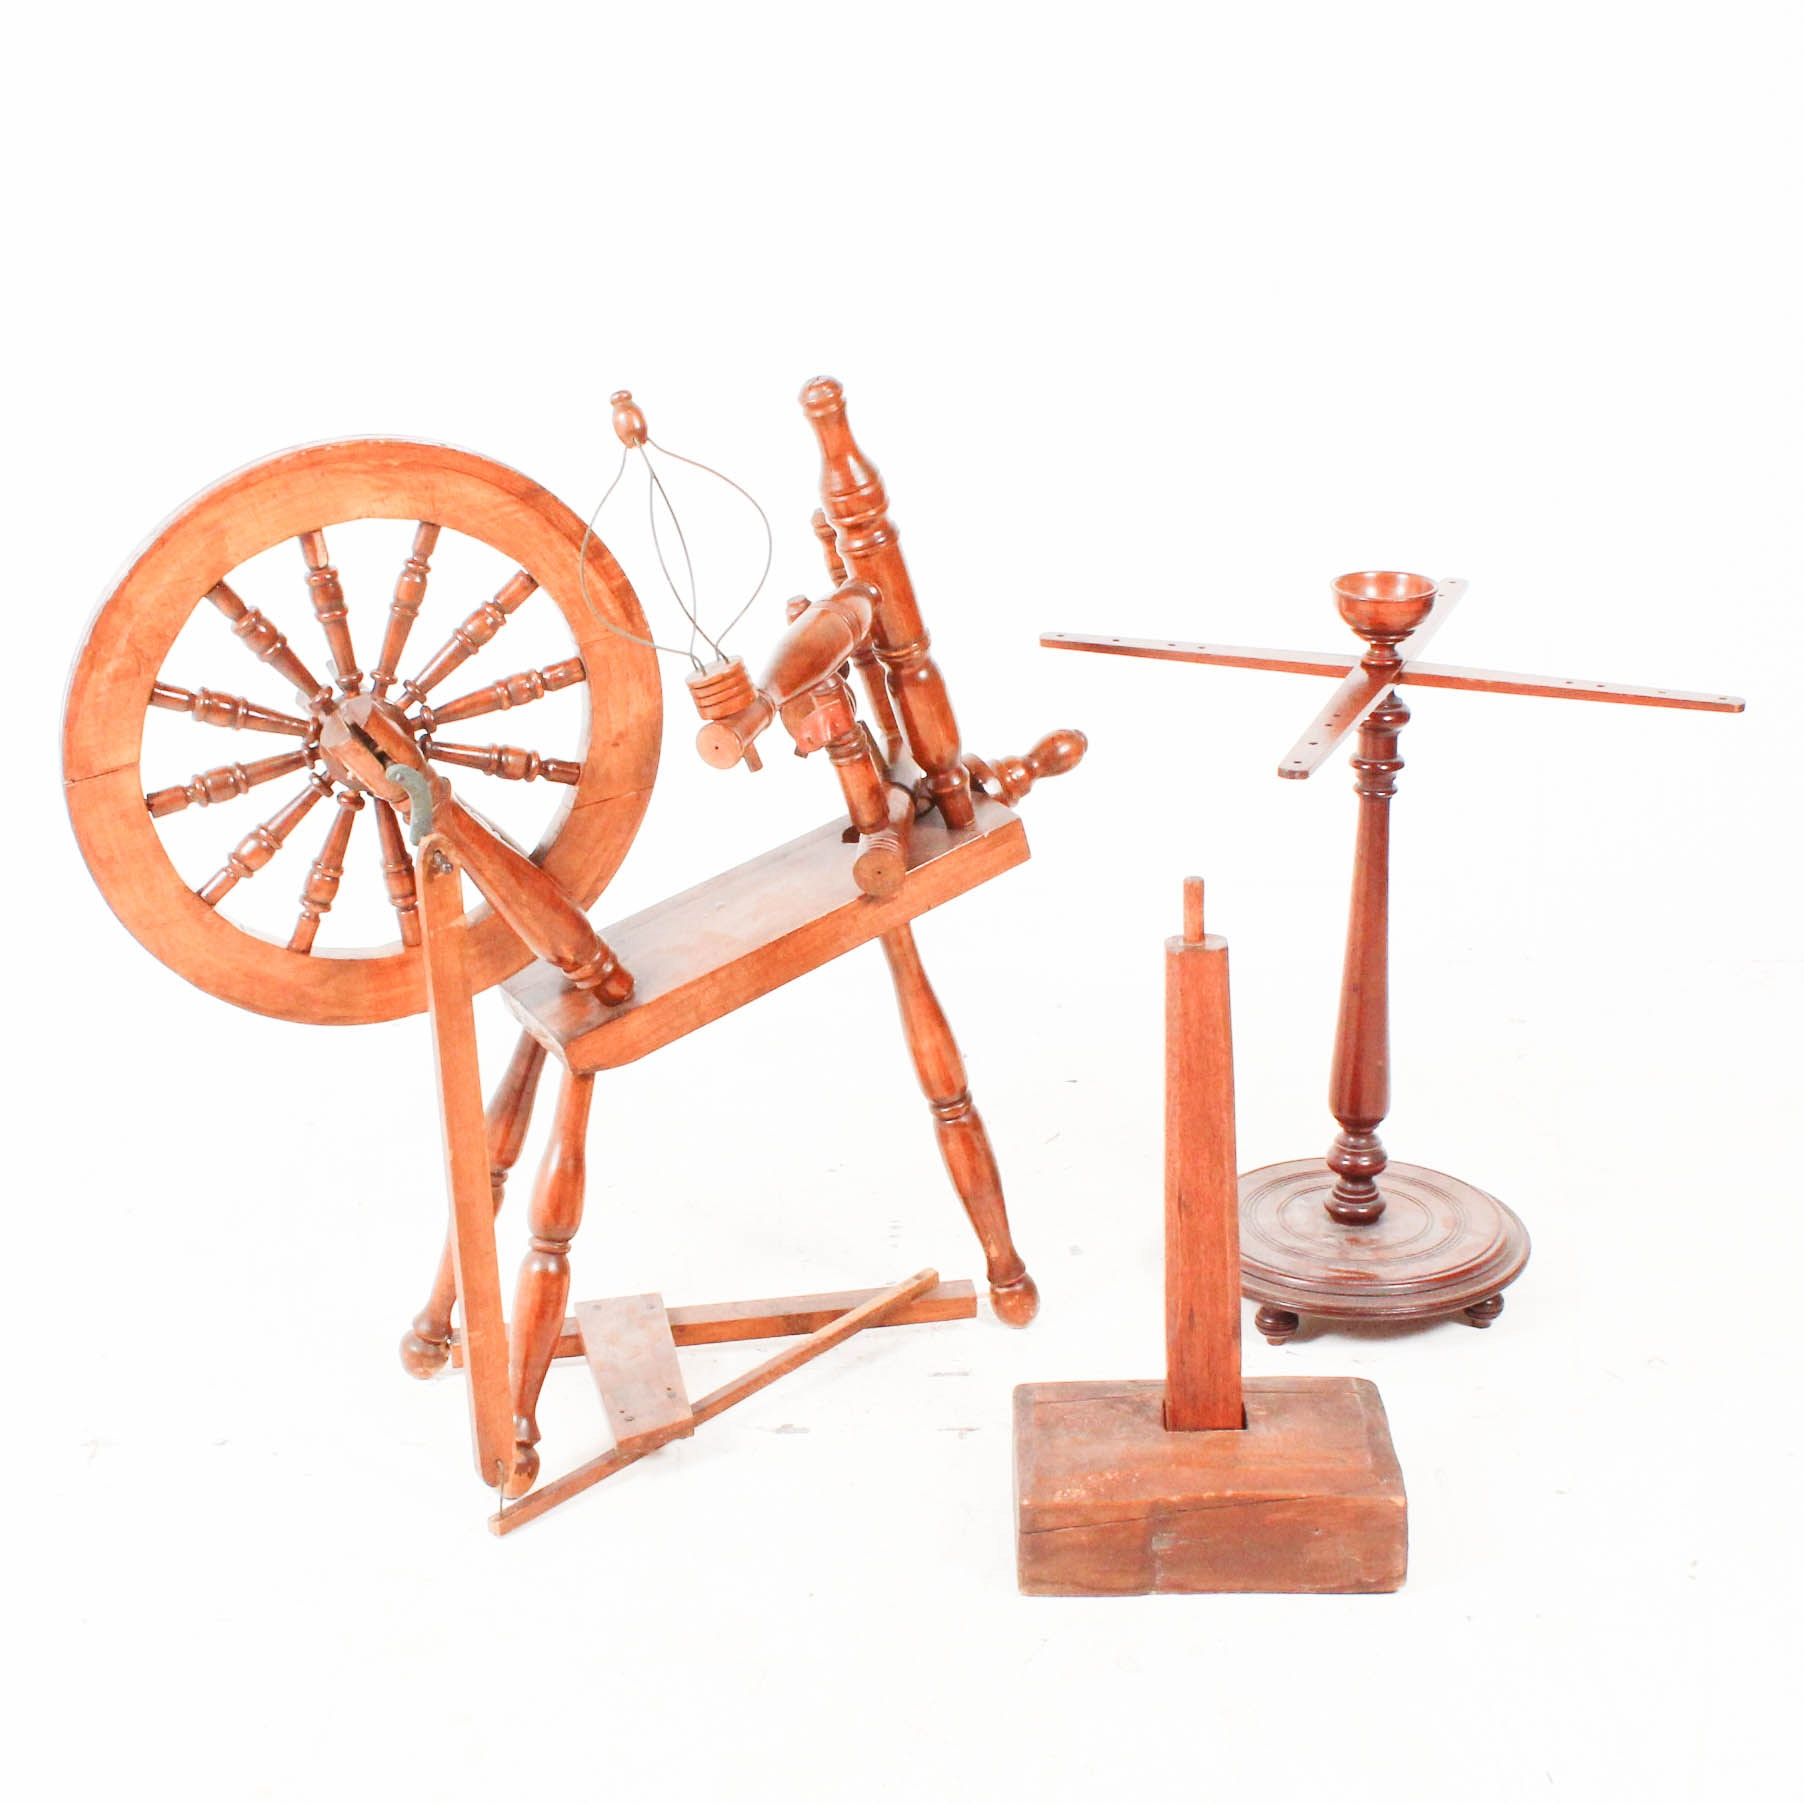 Vintage Wooden Spinning Wheel With Antique Accessories